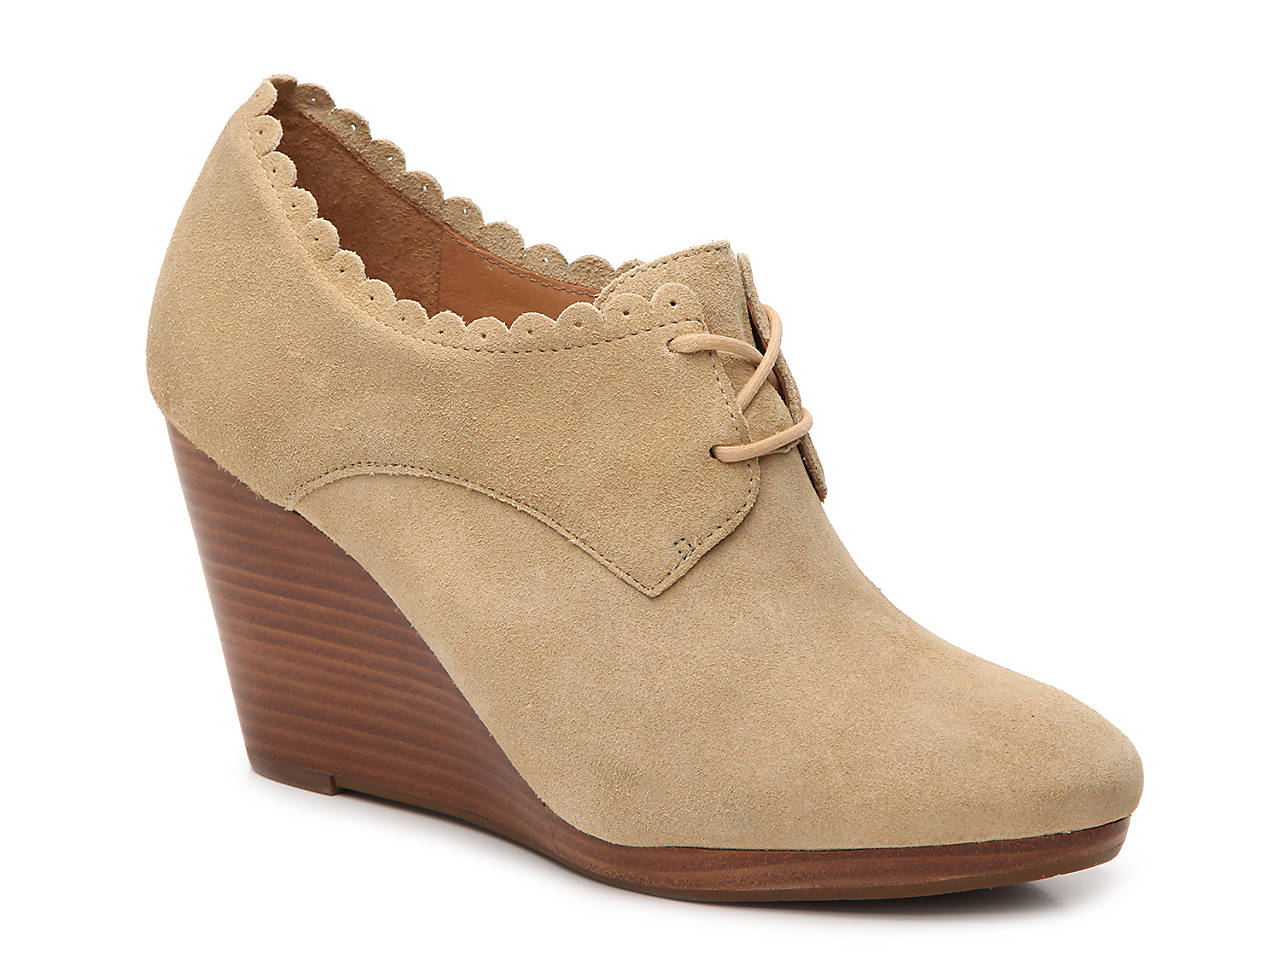 df0be6b4efcf Jack Rogers Olivia Wedge Bootie Women s Shoes